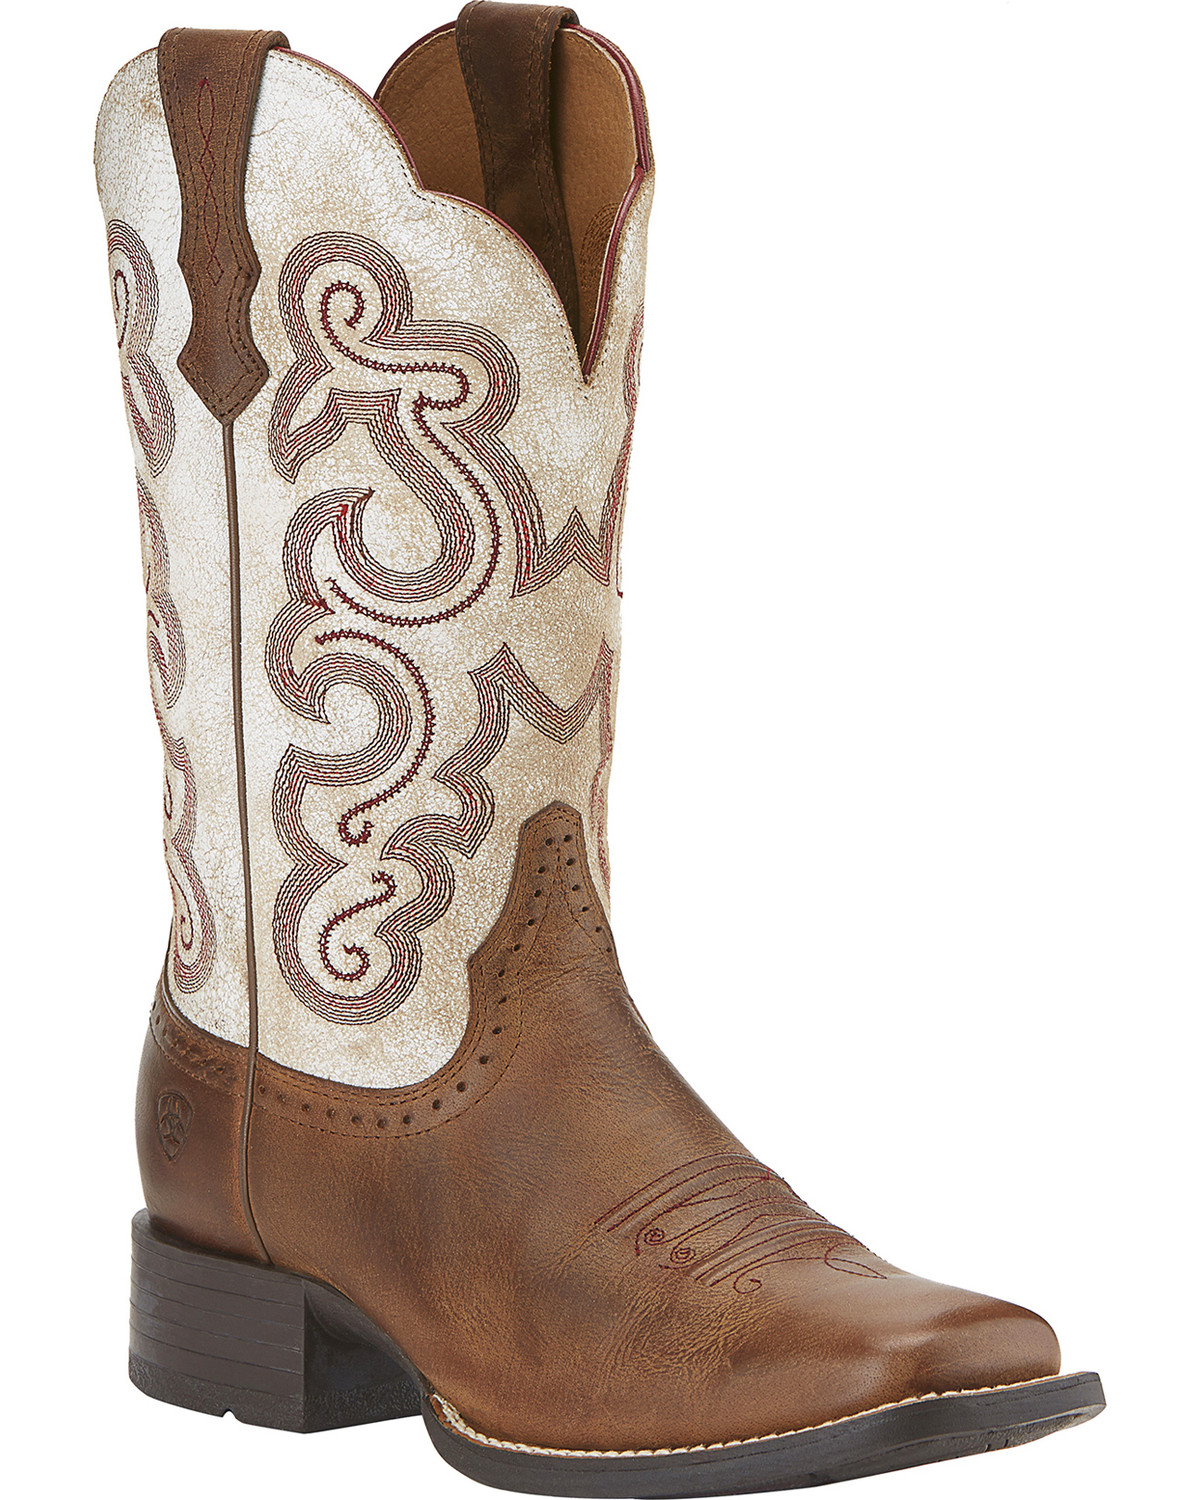 Ariat Women's Quickdraw Cowgirl Boots - Square Toe - Country Outfitter